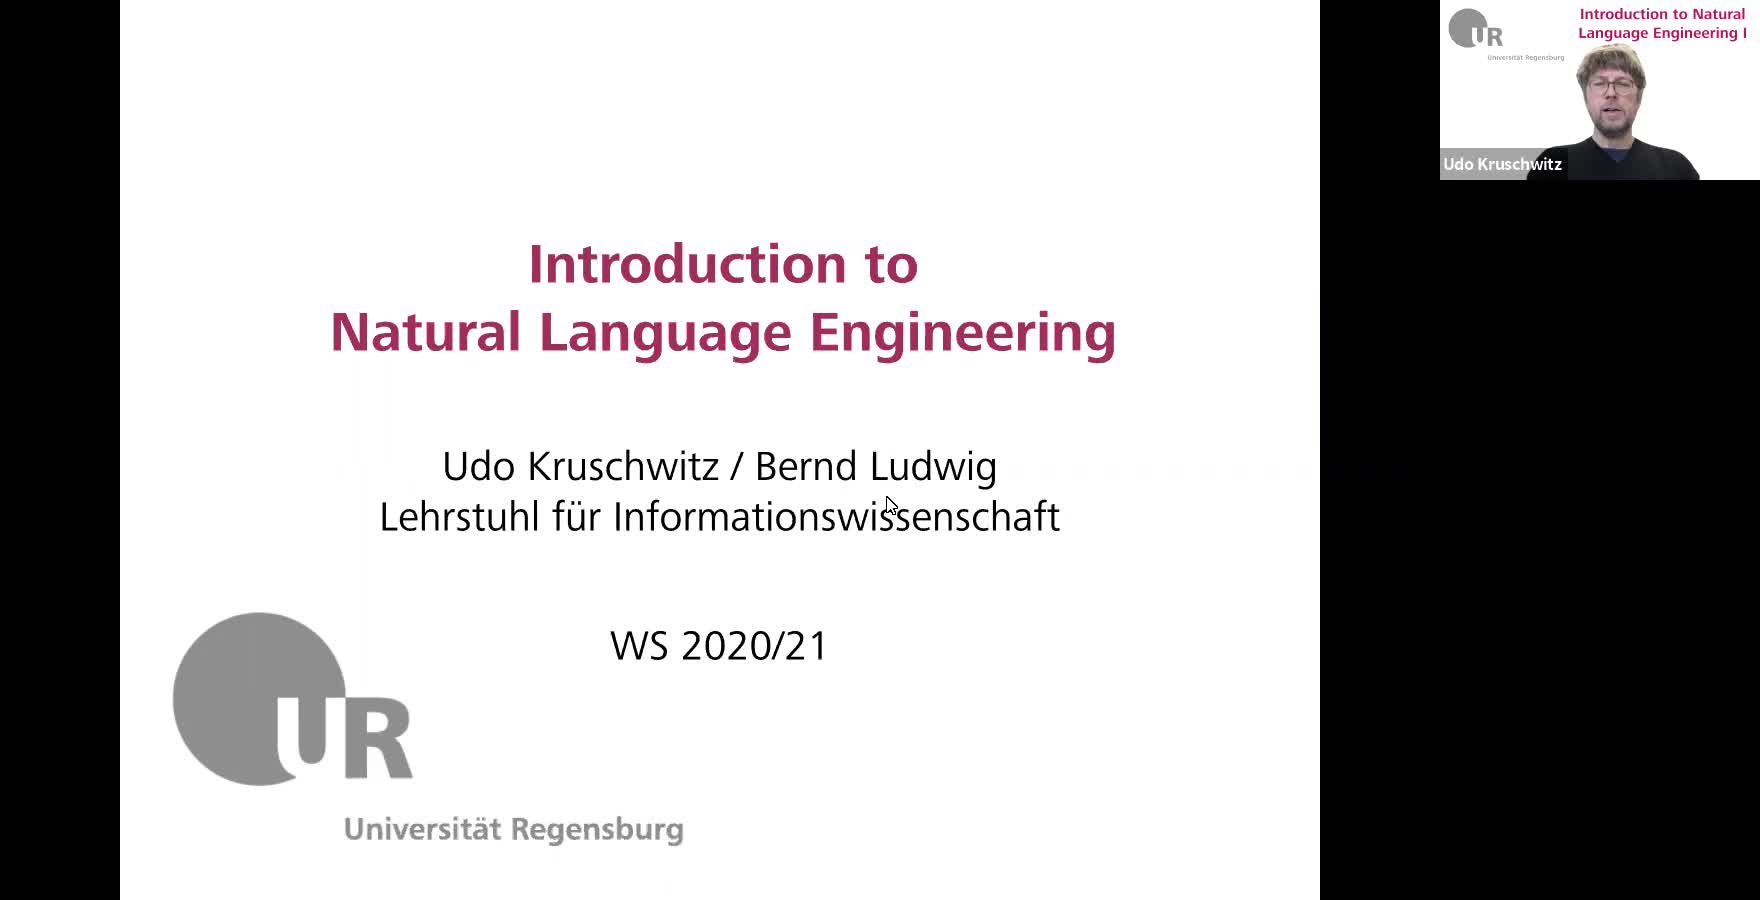 Introduction to Natural Language Engineering 1 / Informationslinguistik 1 - Lecture 1 (Overview)